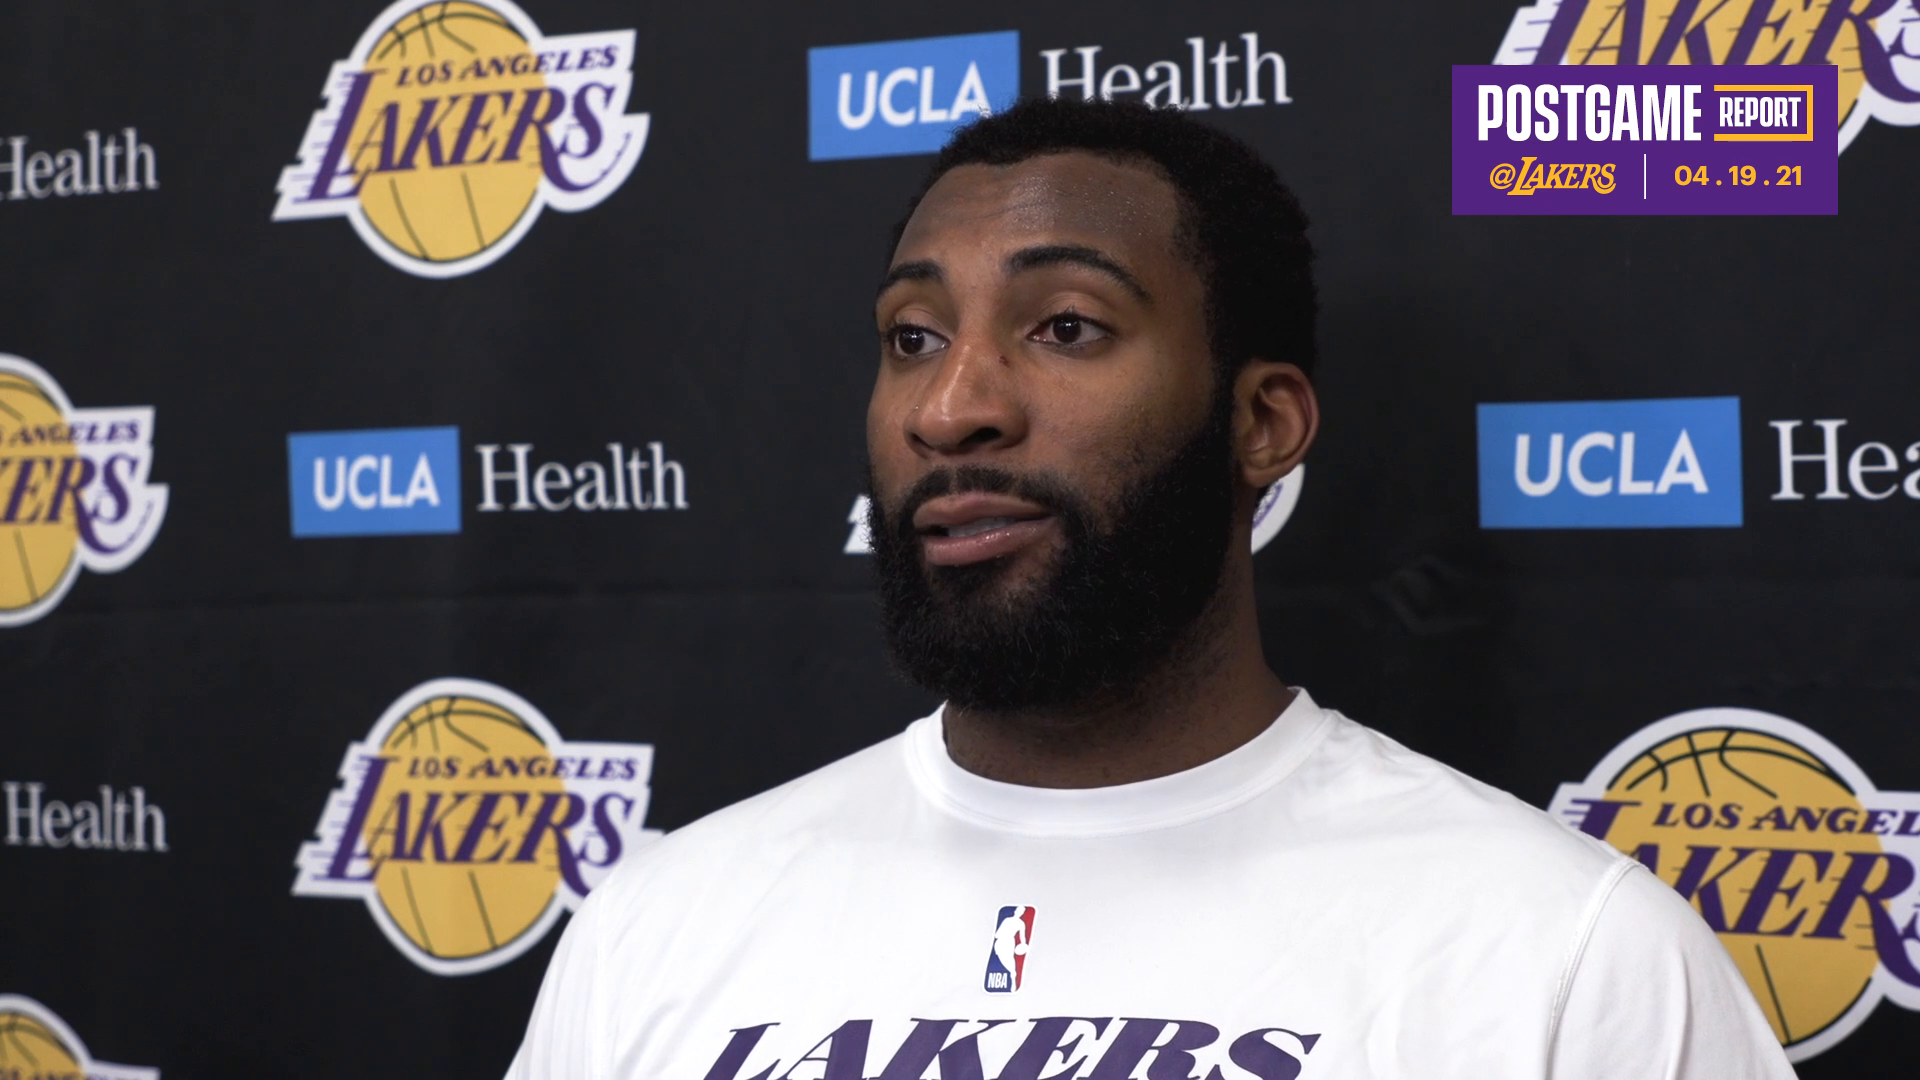 Lakers Postgame: Andre Drummond (4/19/21)